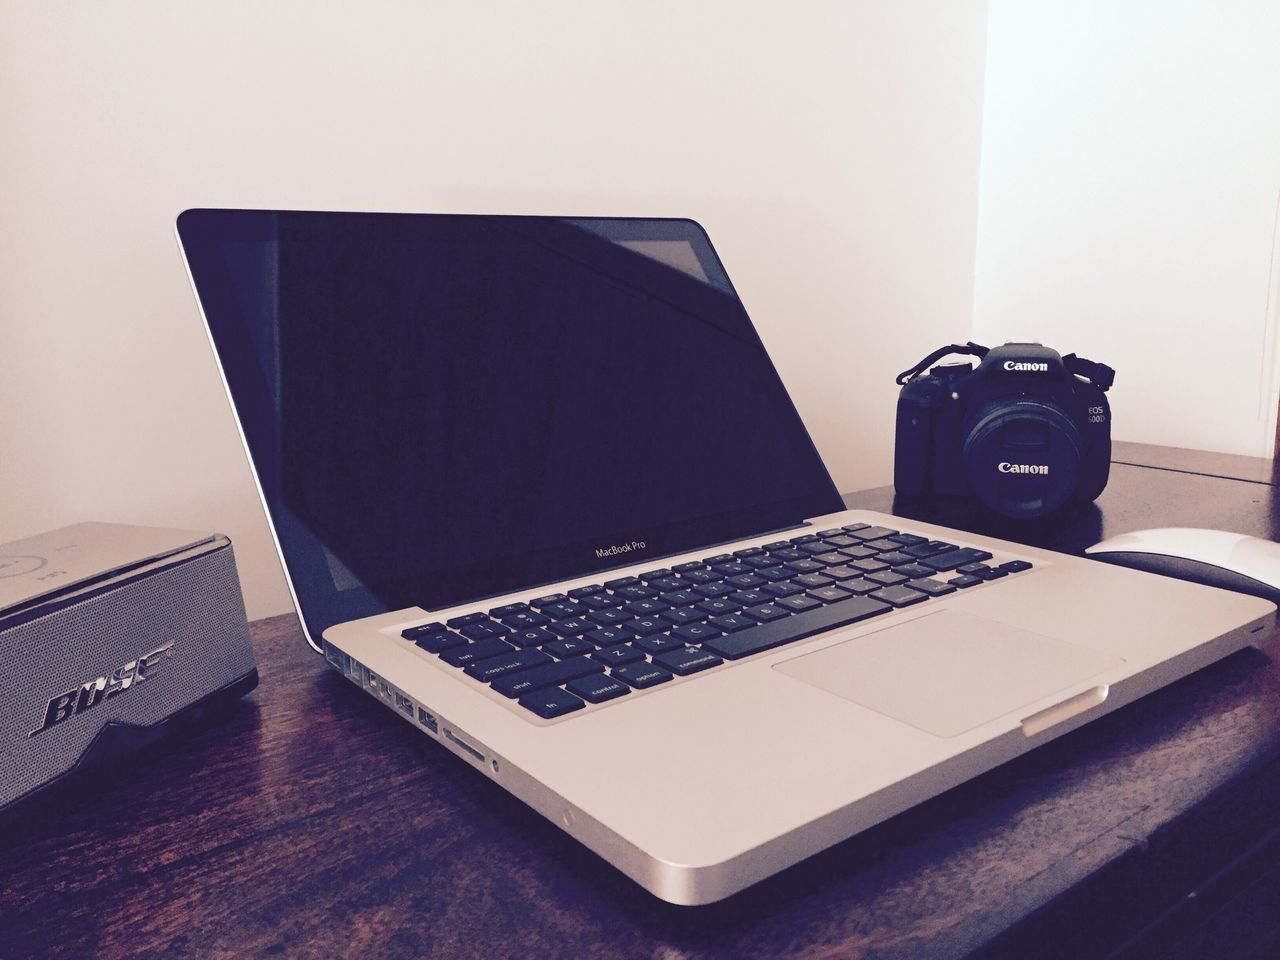 Showcase March Bose Bluetooth Speaker Canon EOS 600D DSLR MacBook Pro Magic Mouse My Desk At Home My Desk My Point Of View Inside My Room IPhoneography Iphonephotography IPhone Photography